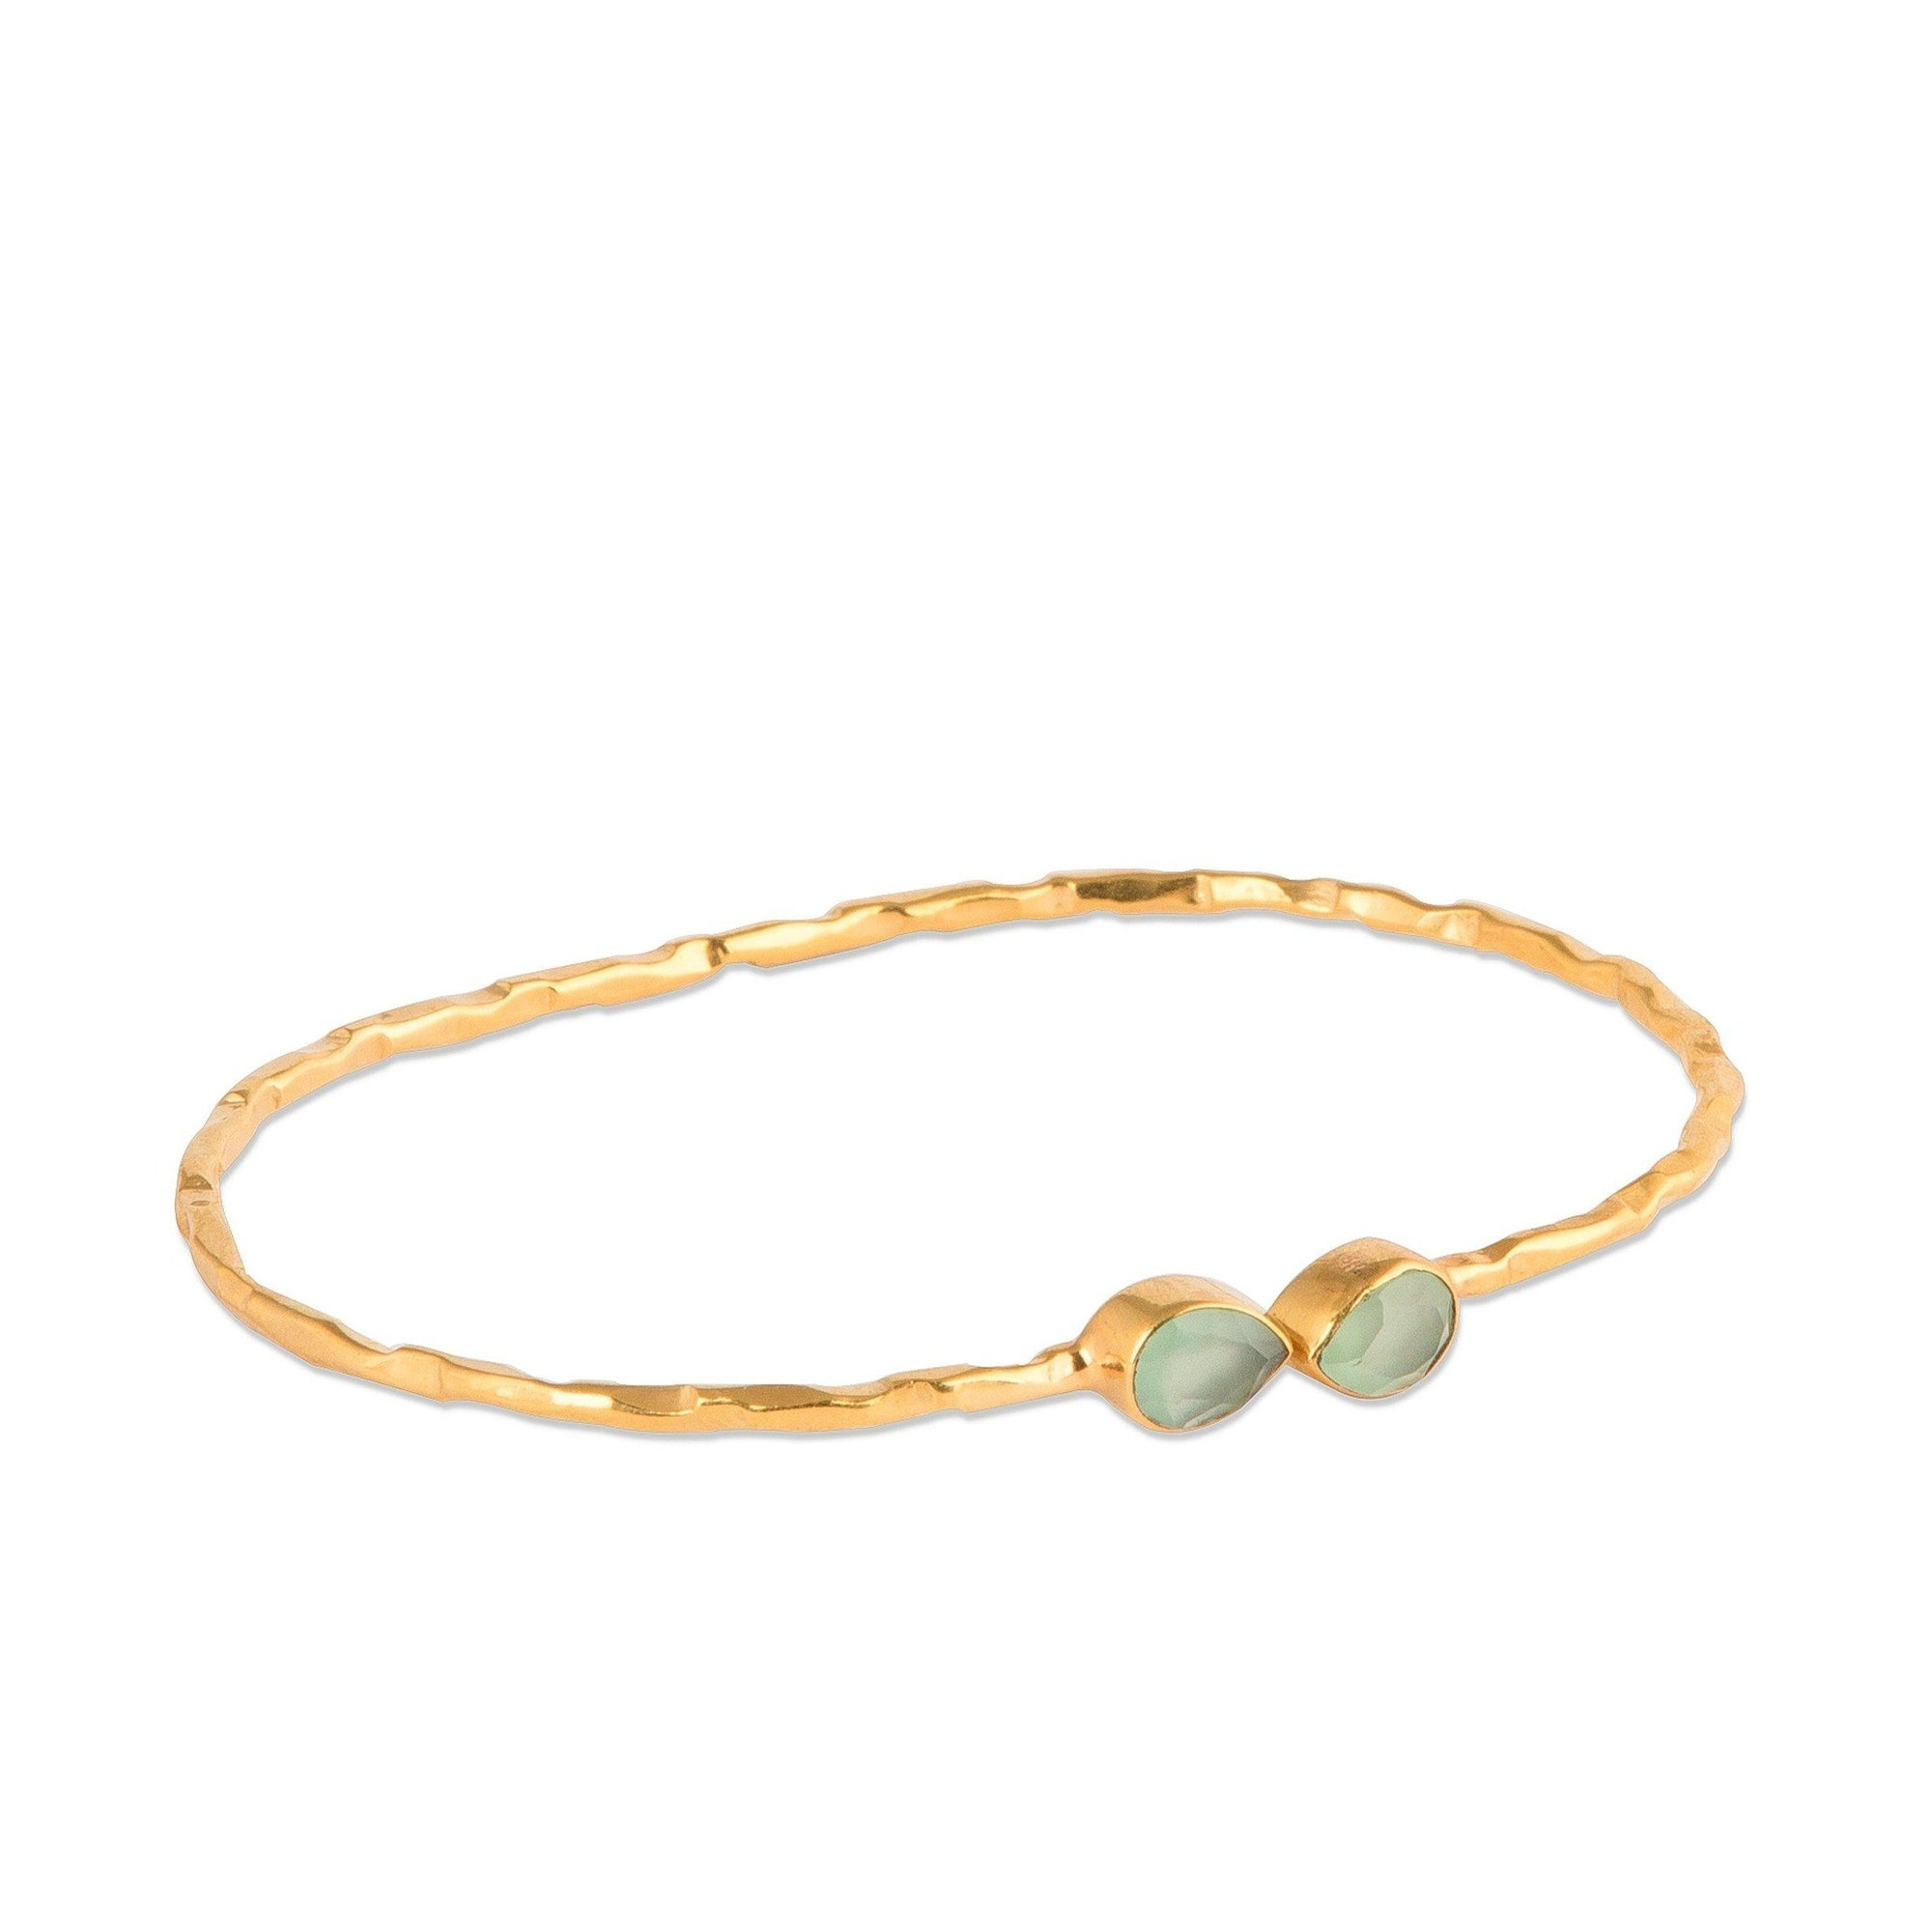 Francesca gold-plated silver hammered bangle in Aqua - Bangle